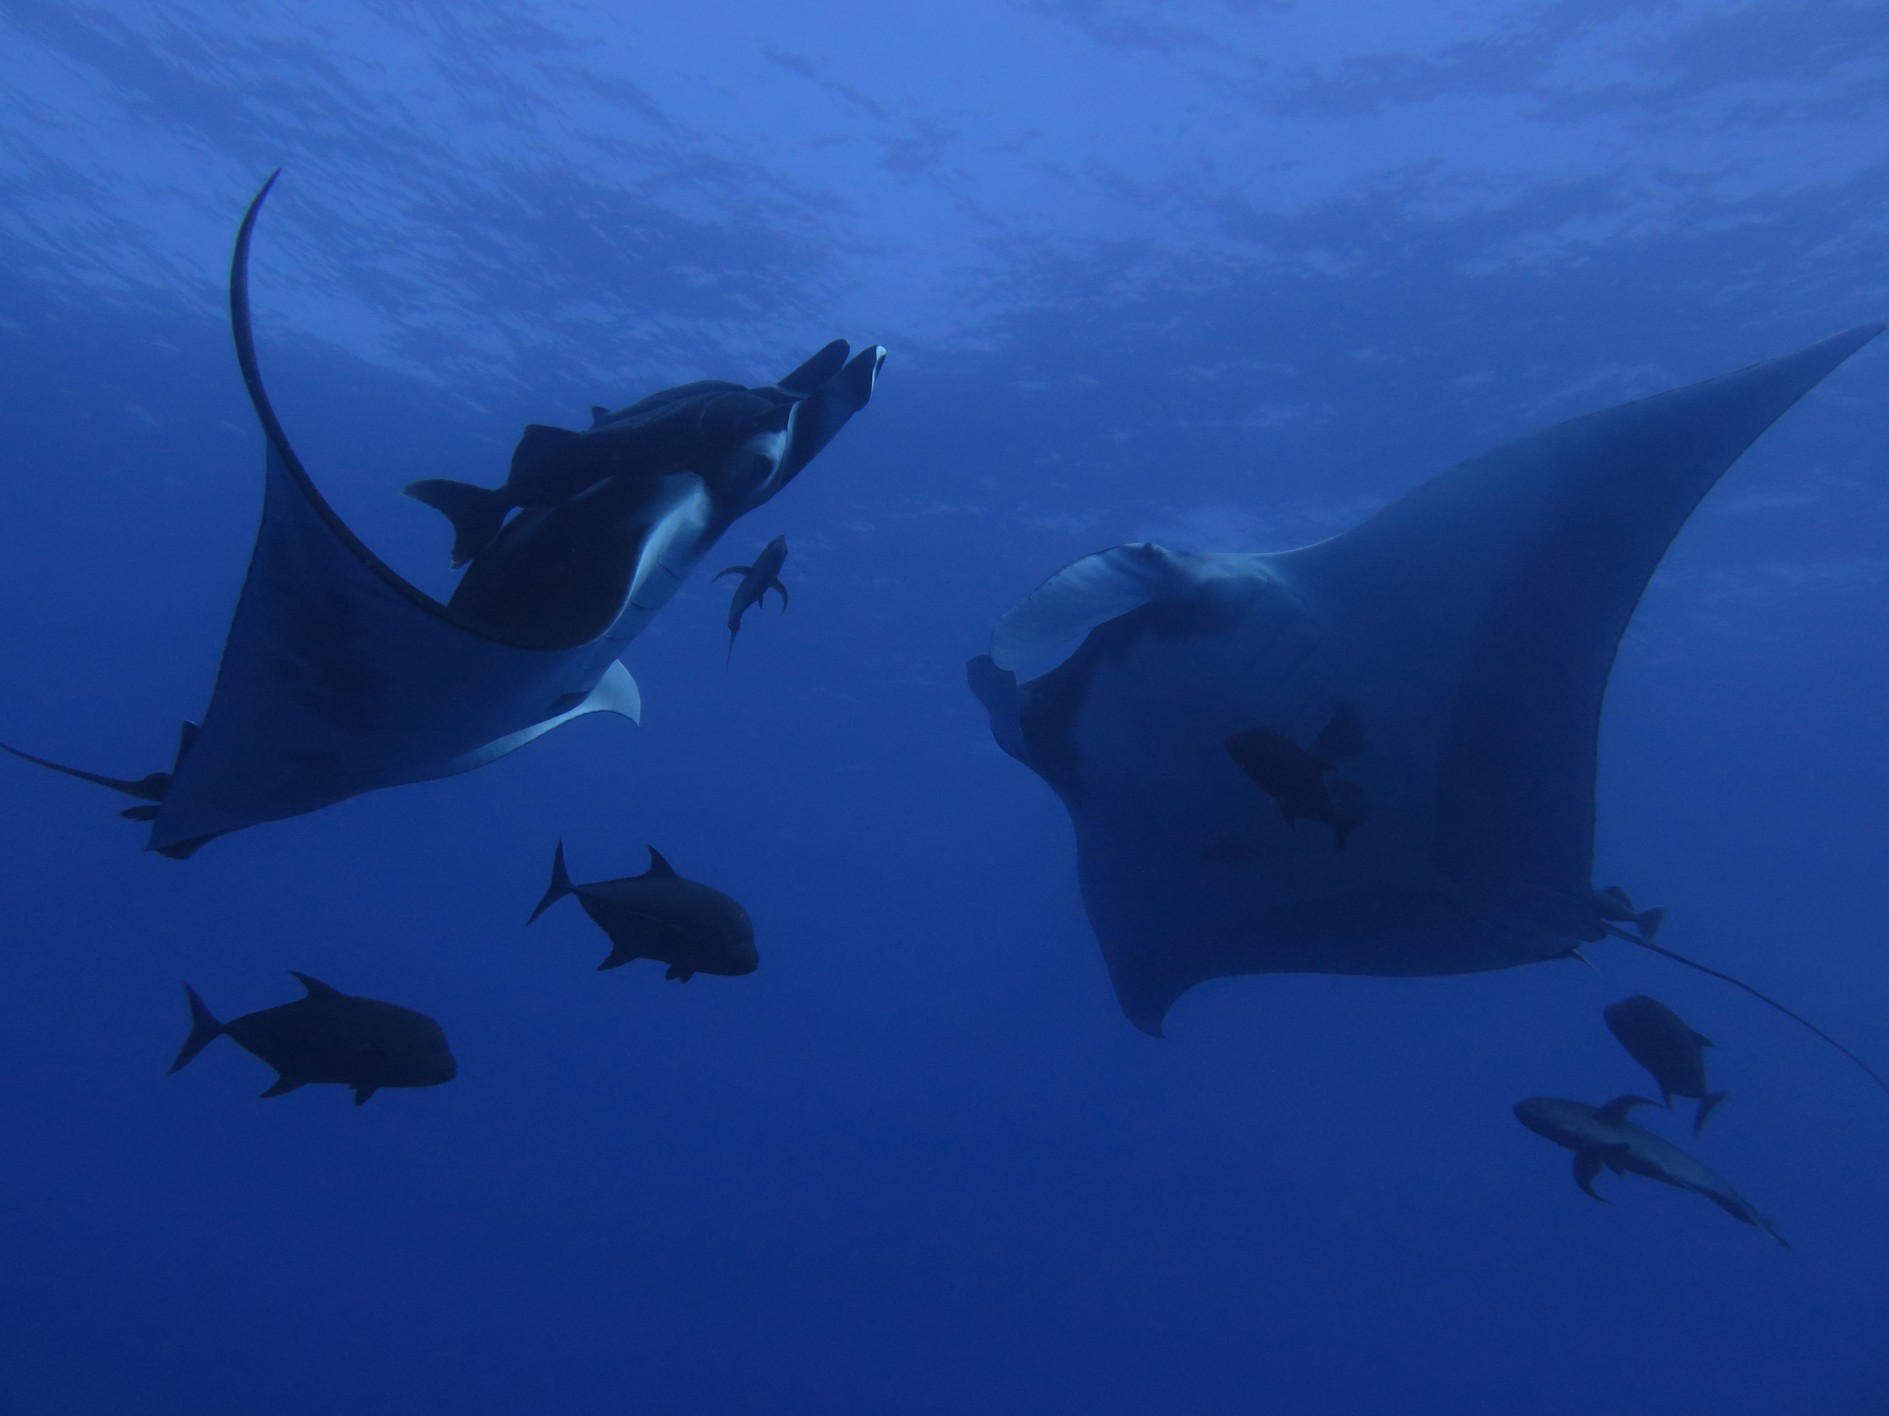 two giant manta rays seemingly doing an aquatic dance together